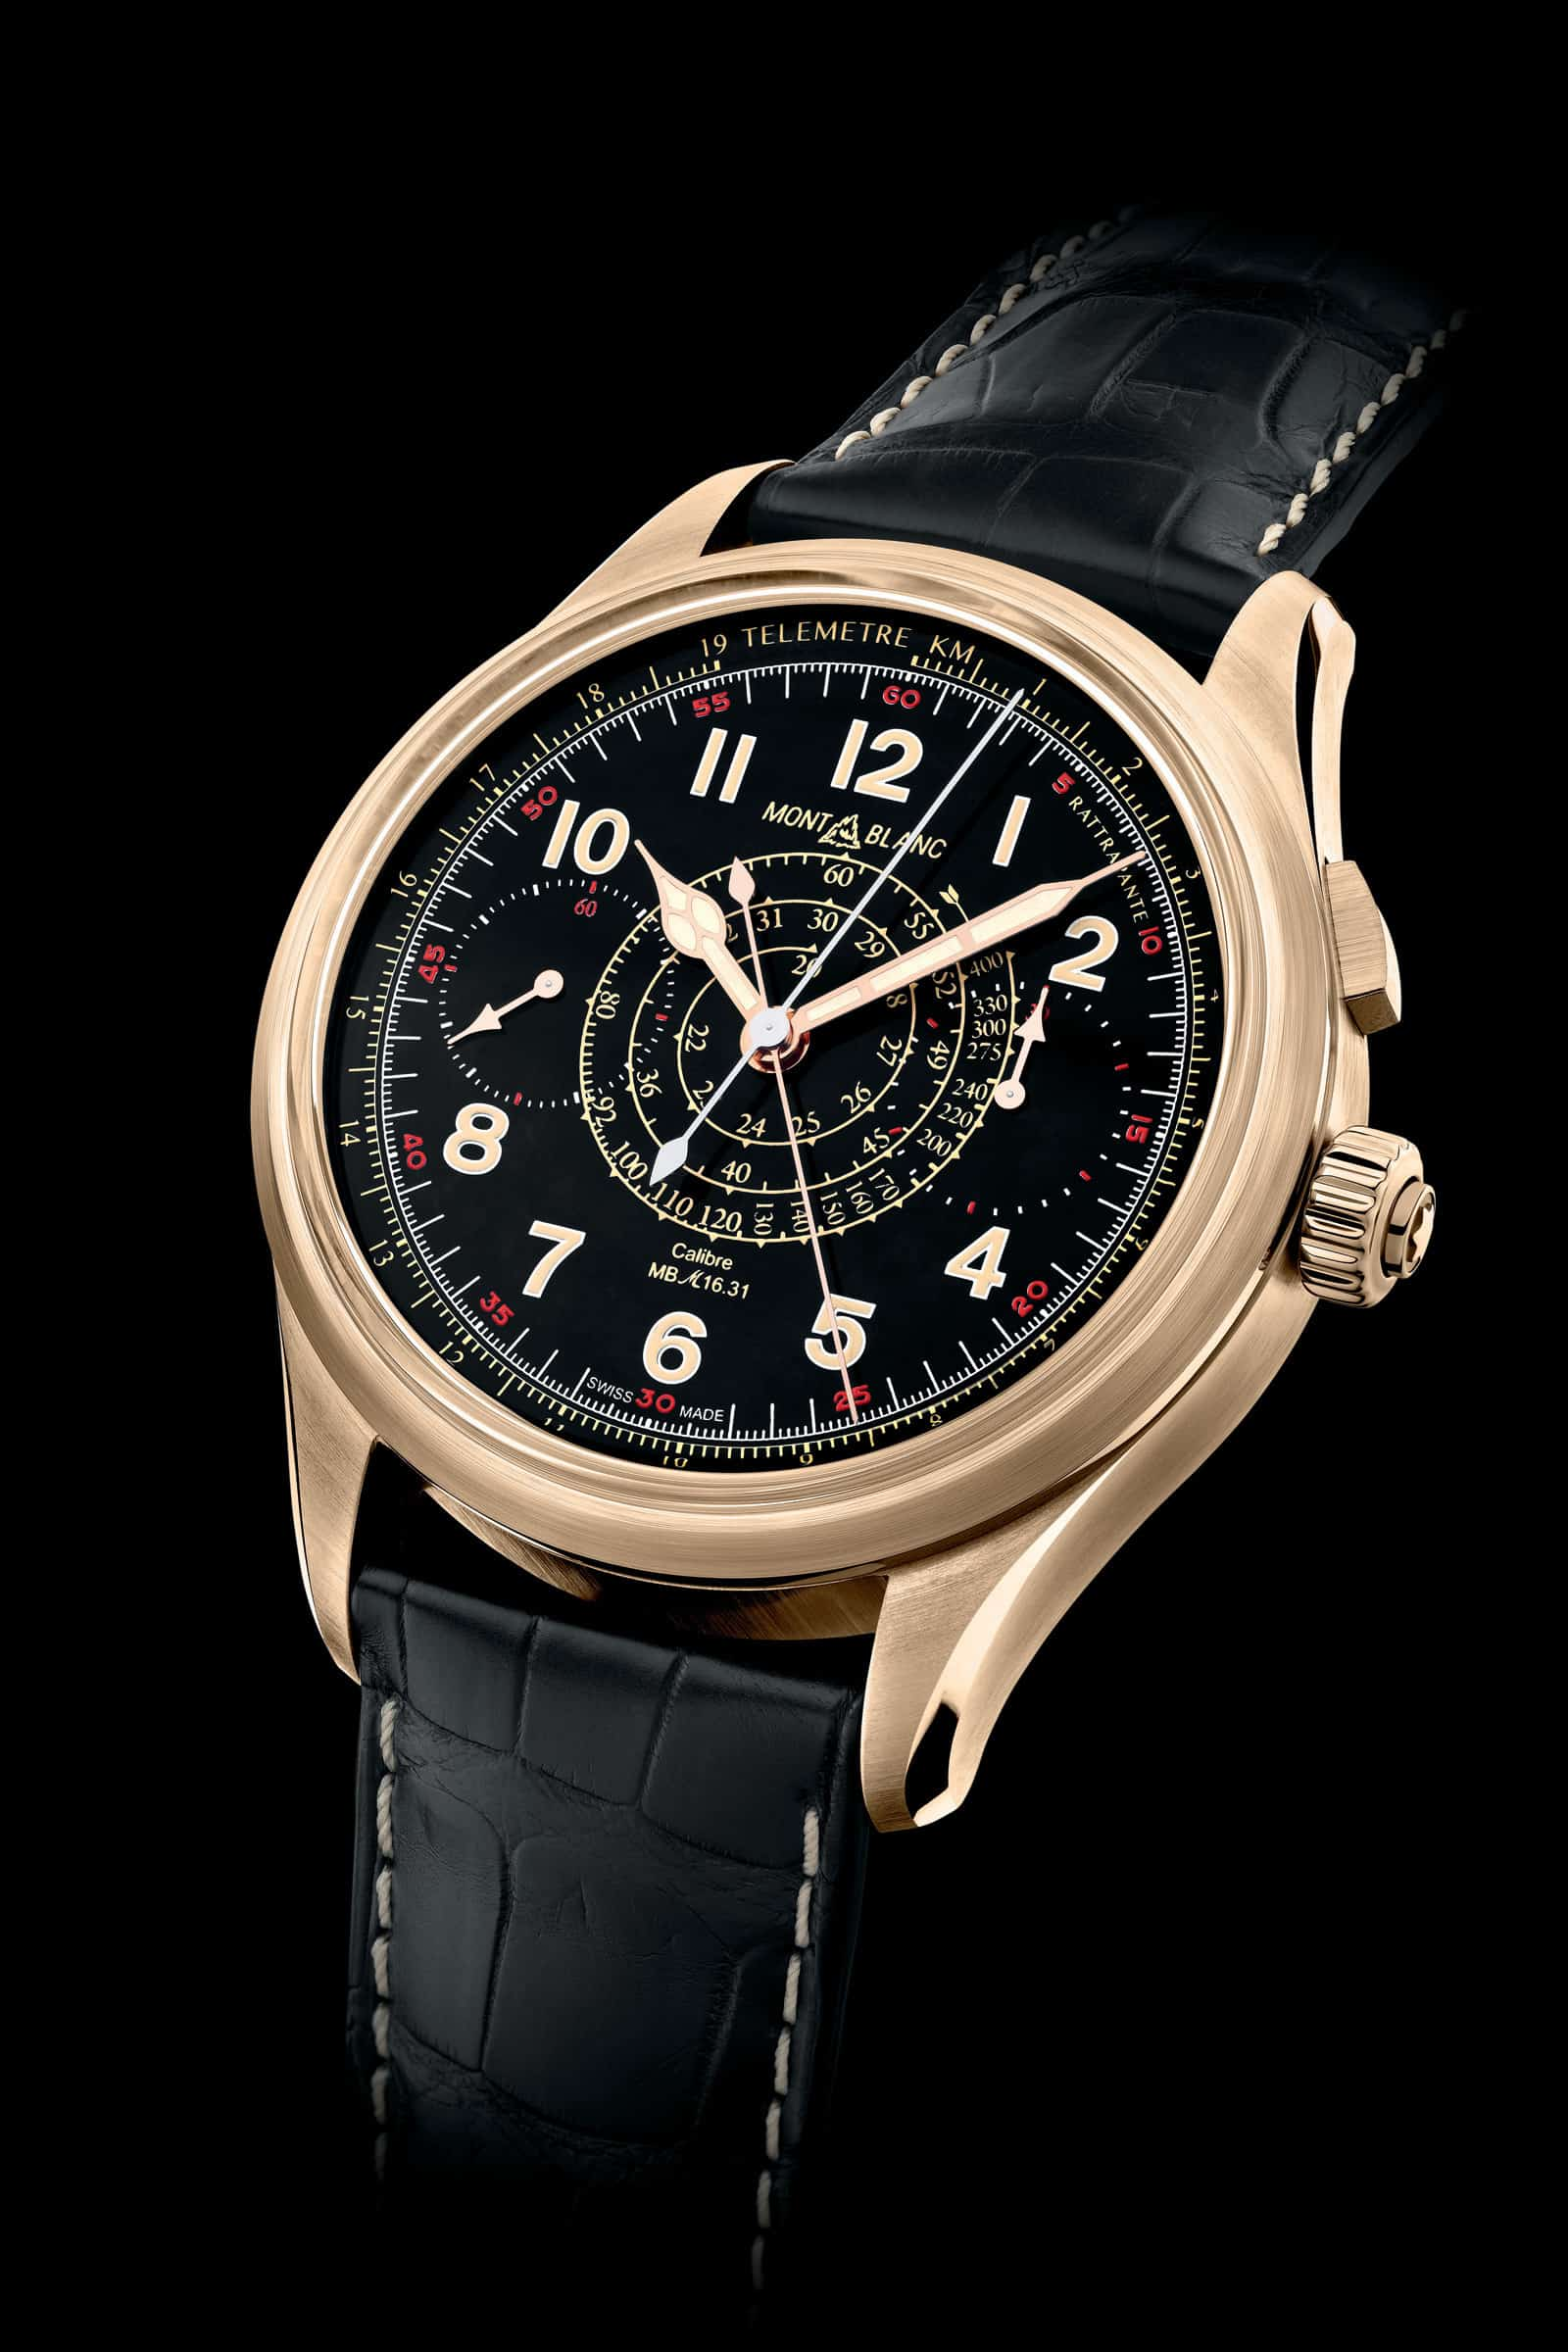 Der Bronze-Chronograph Montblanc 1858 Split Second